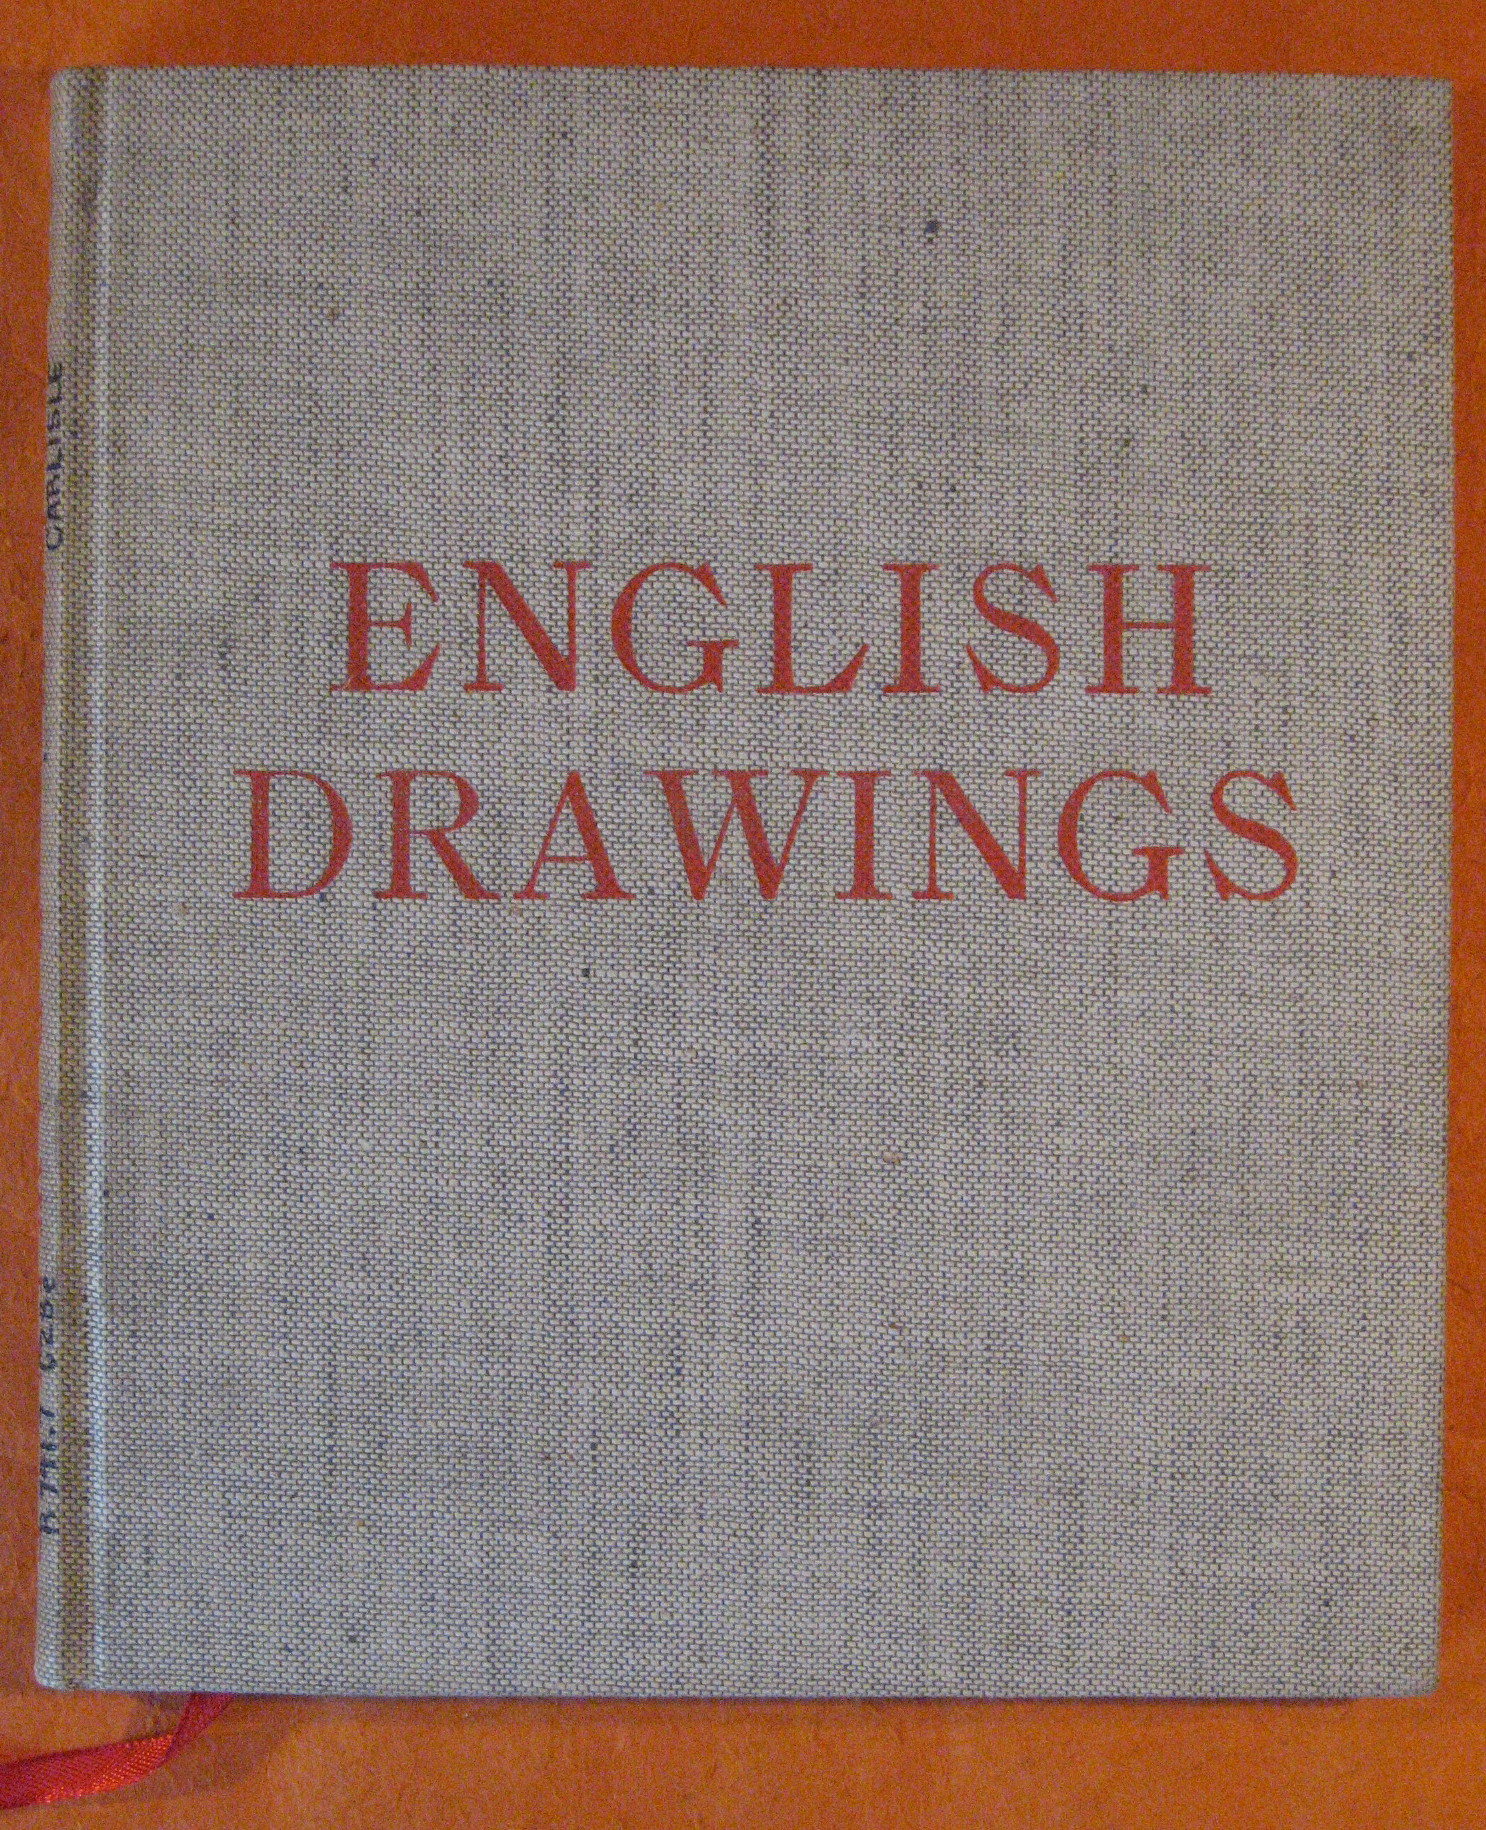 Blank Journal (English Drawings)